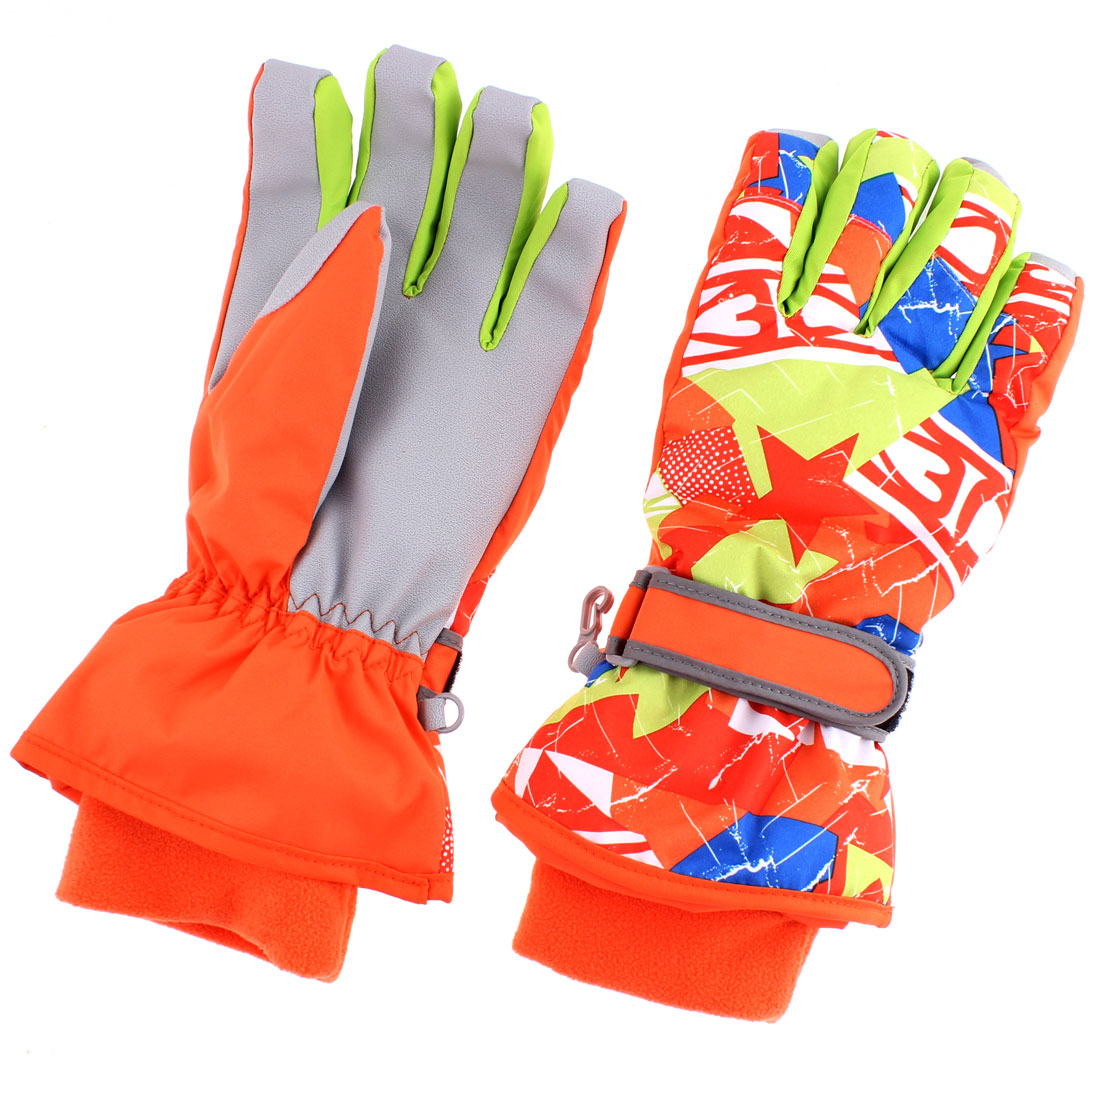 Kids Winter Outdoor Sports Ski Gloves Orange XS Pair